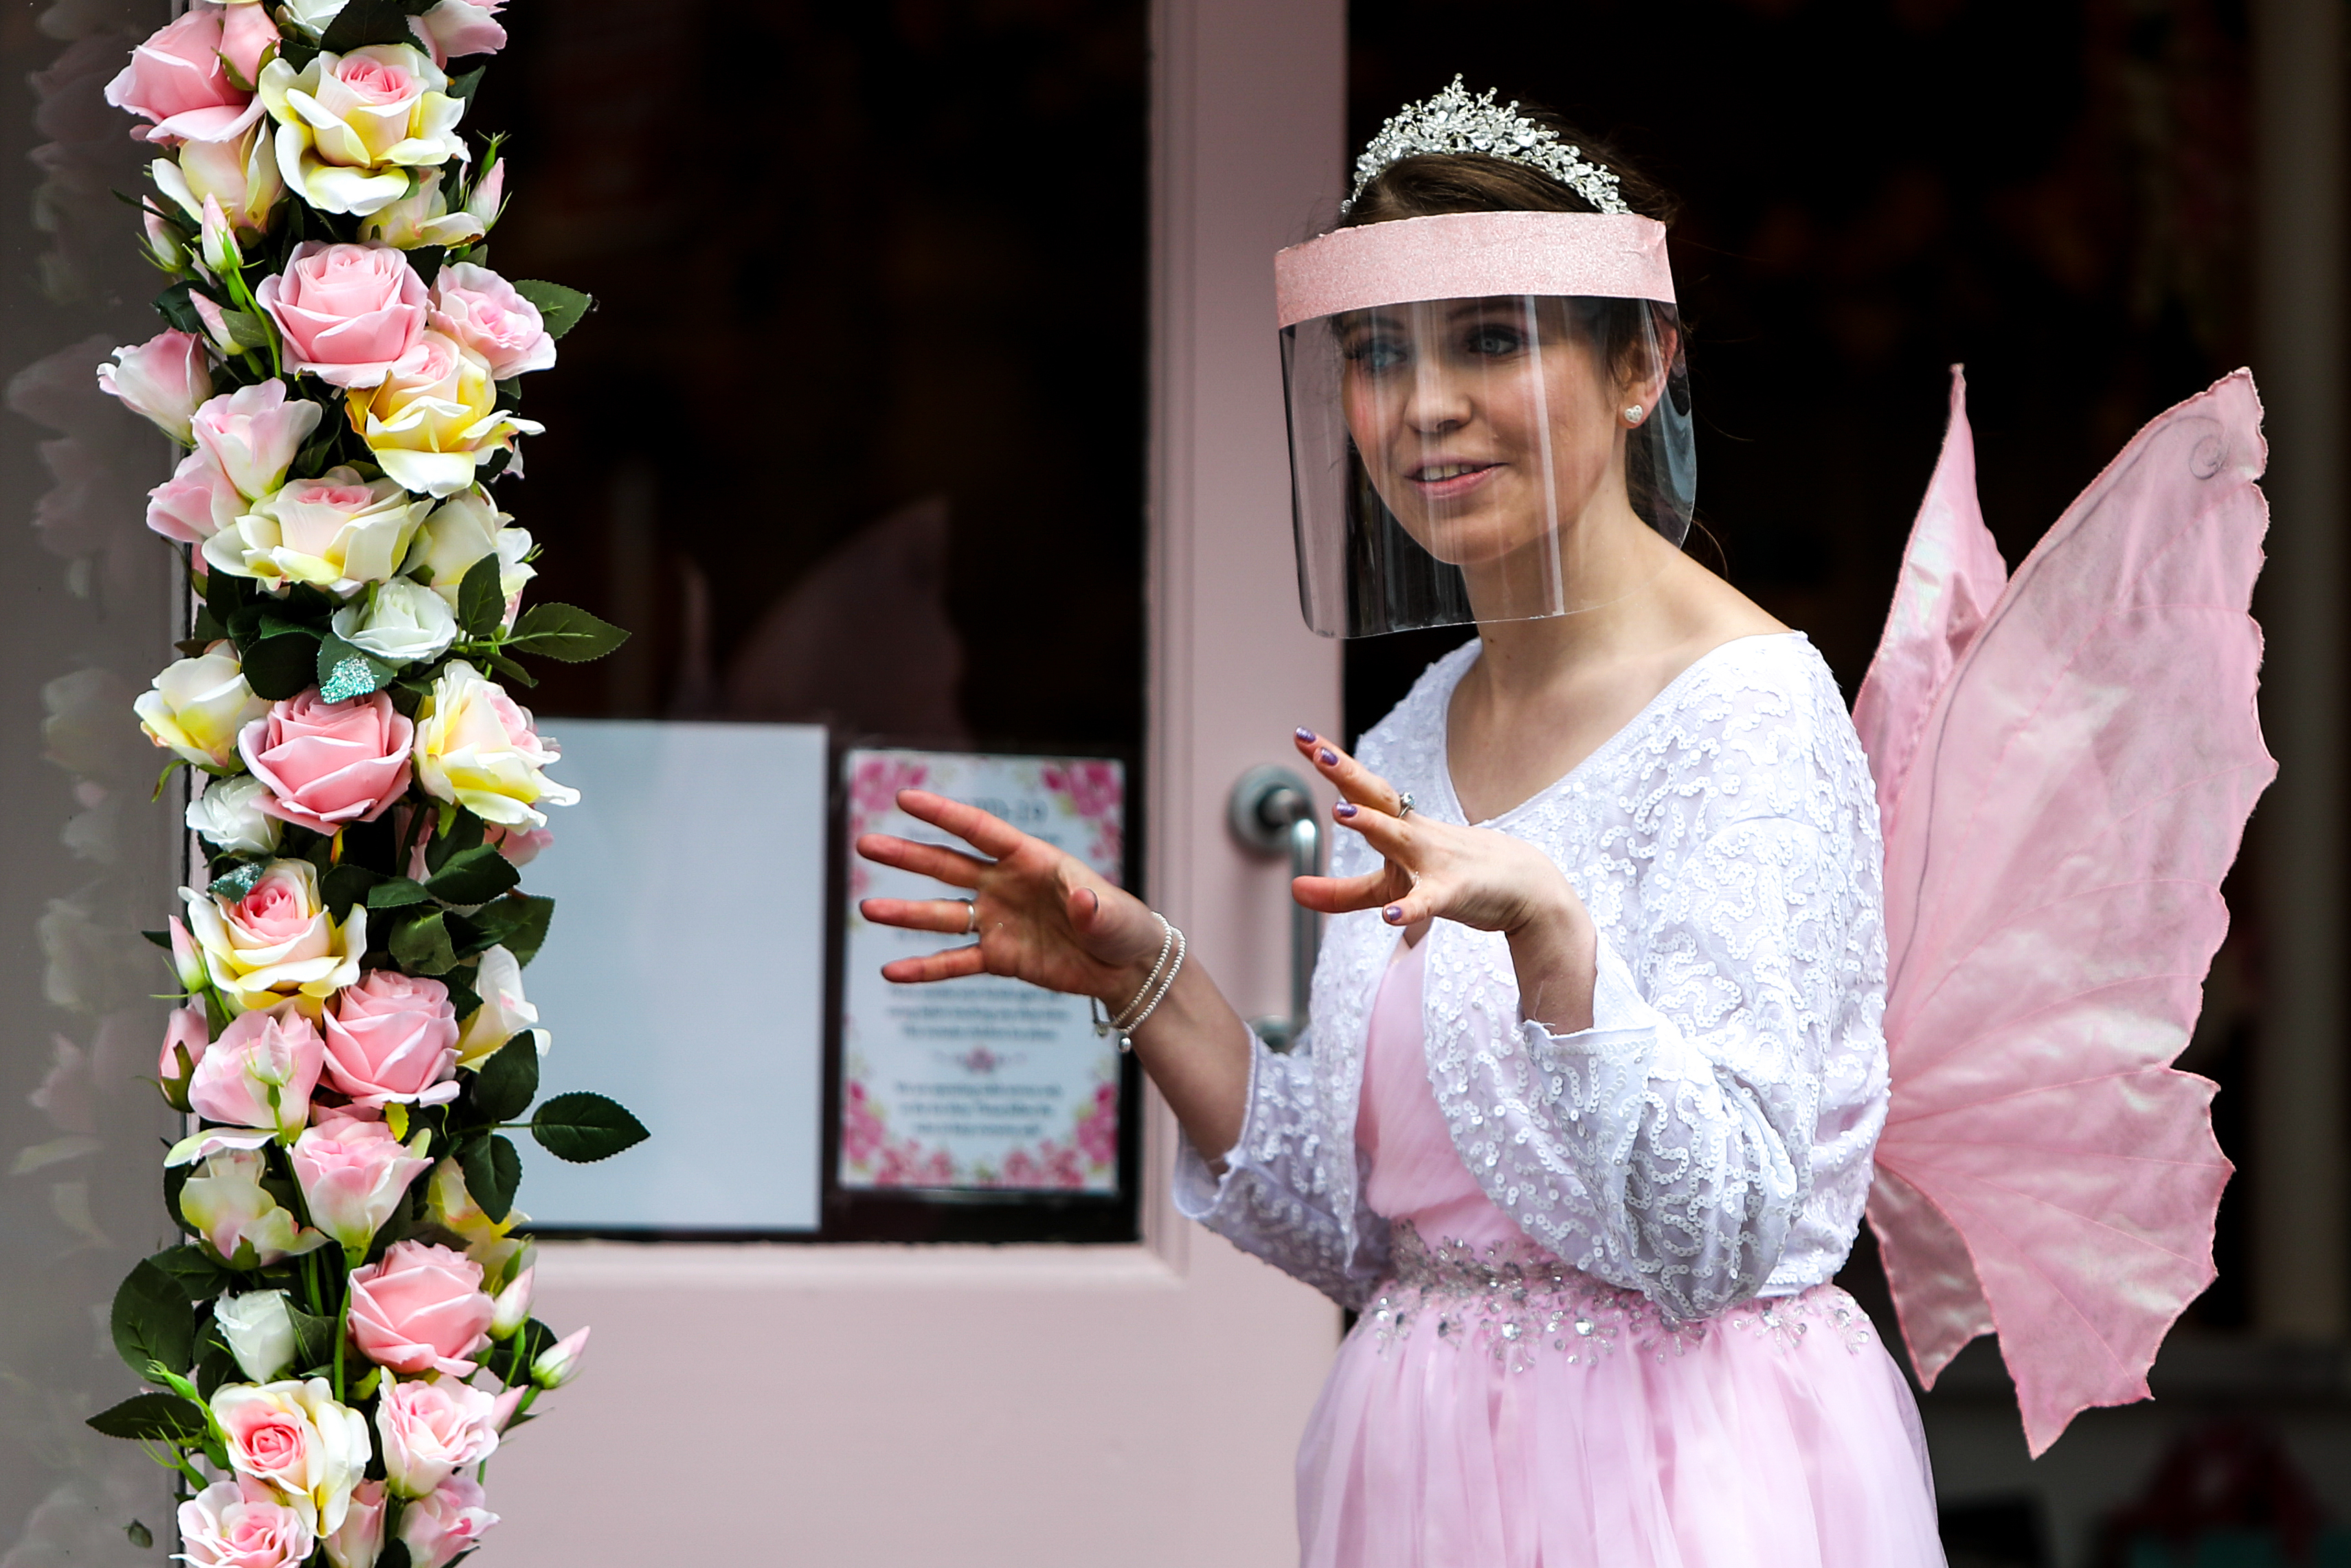 <p>A waitress dressed as a fairy serves a customer outside the Petite Fairytale Boutique in Worthing town centre, Sussex, as England takes another step back towards normality with the further easing of lockdown restrictions. Picture date: Monday April 12, 2021.</p>